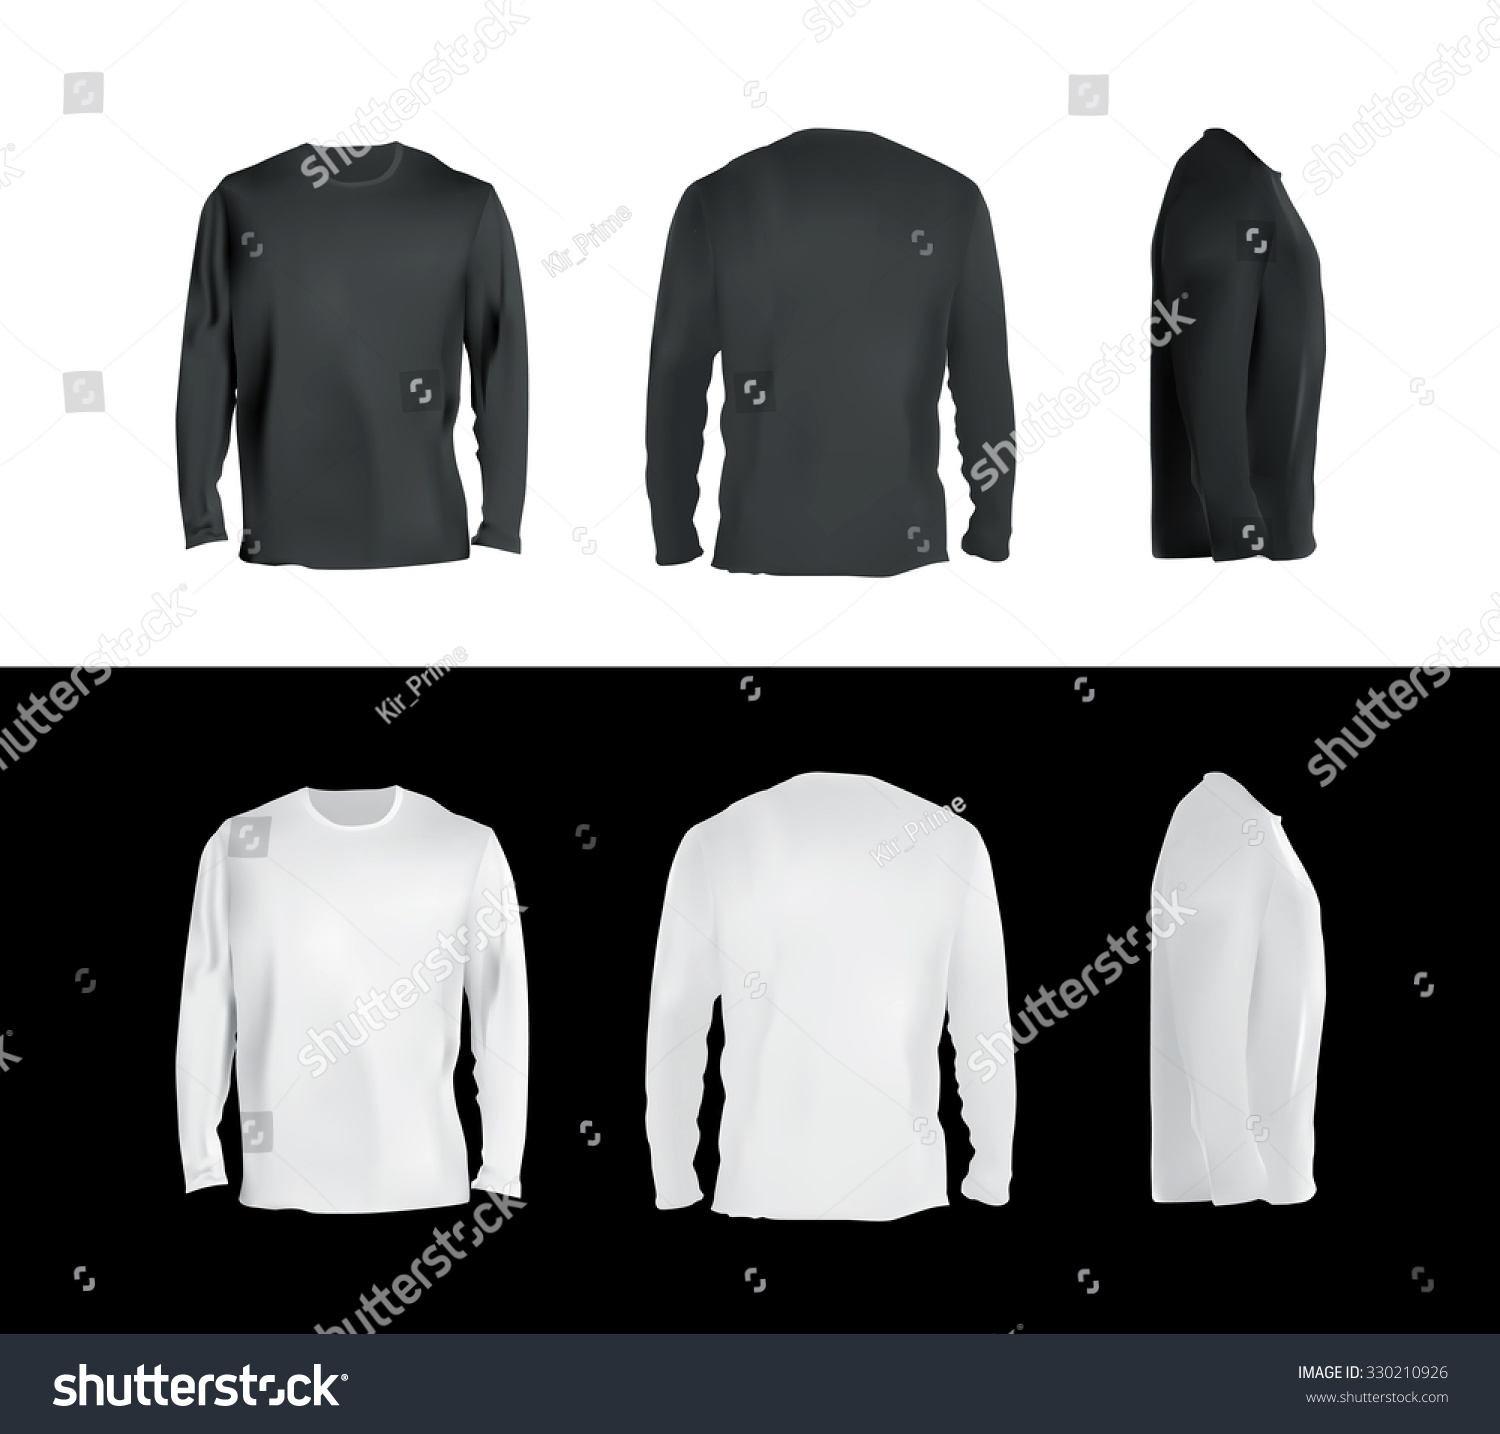 Royalty-free Long sleeved t-shirt templates… #330210926 Stock Photo ...